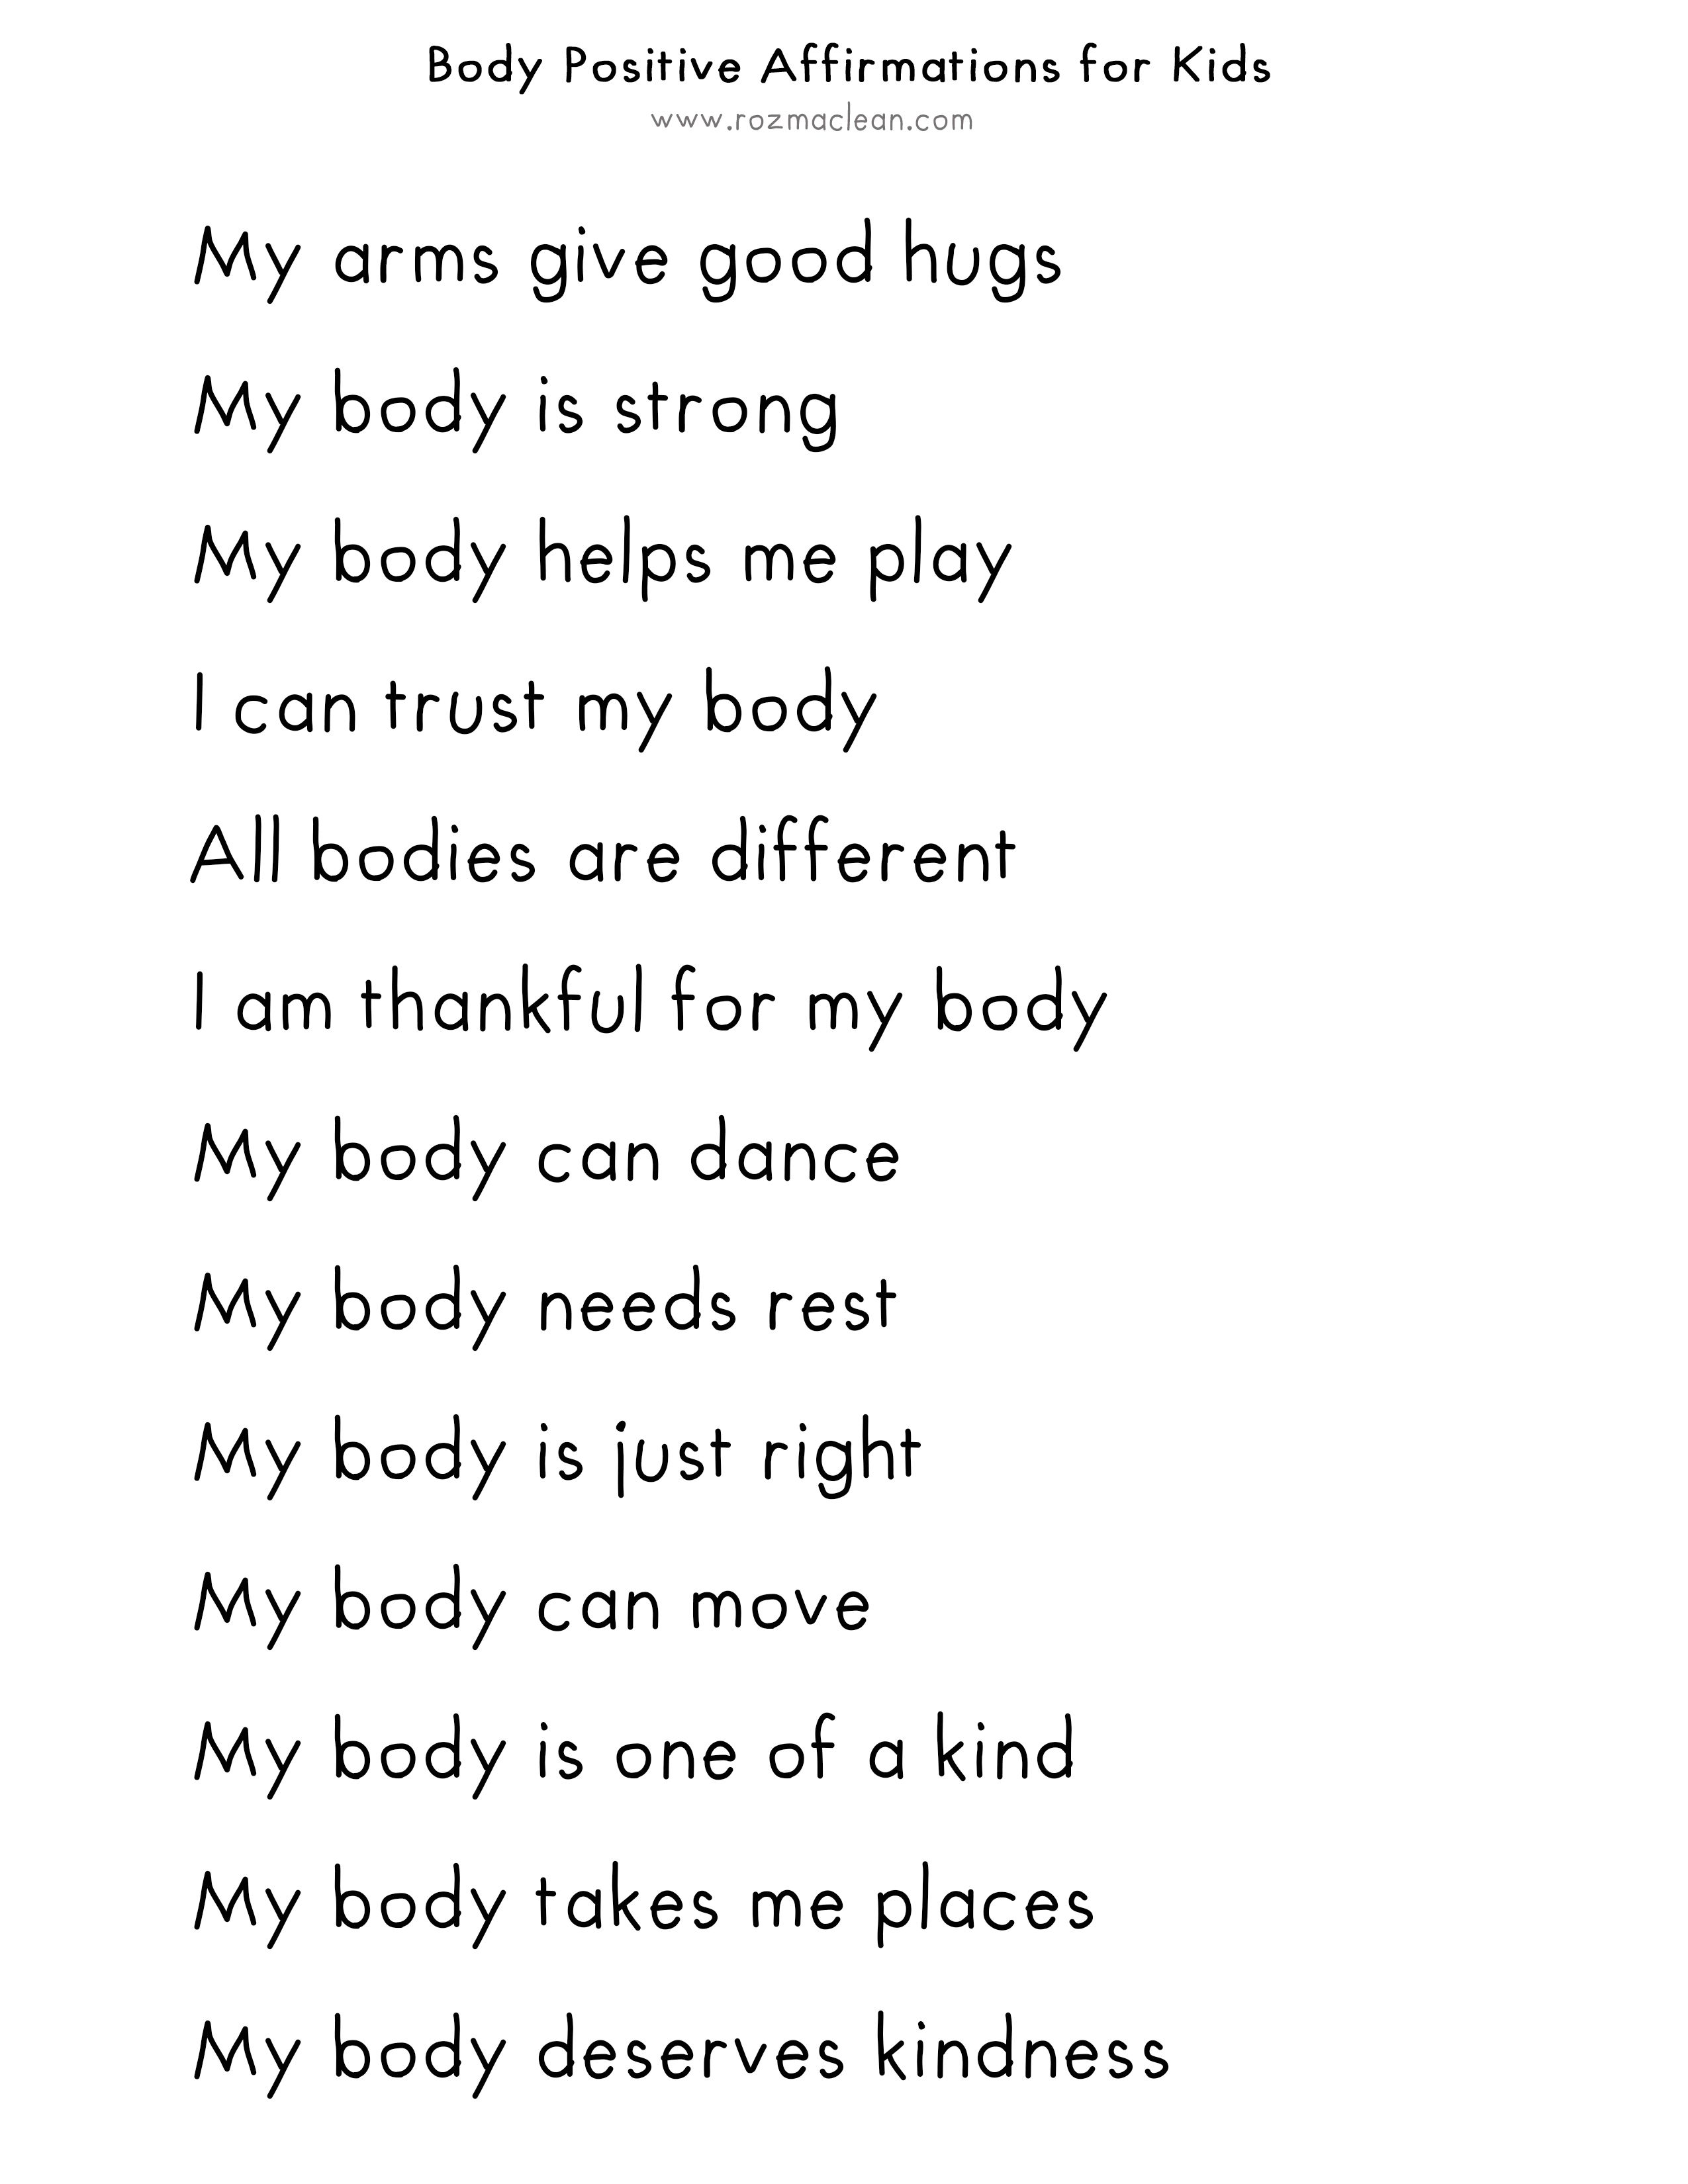 Body Positive Affirmations for Kids and Body Positive Craft